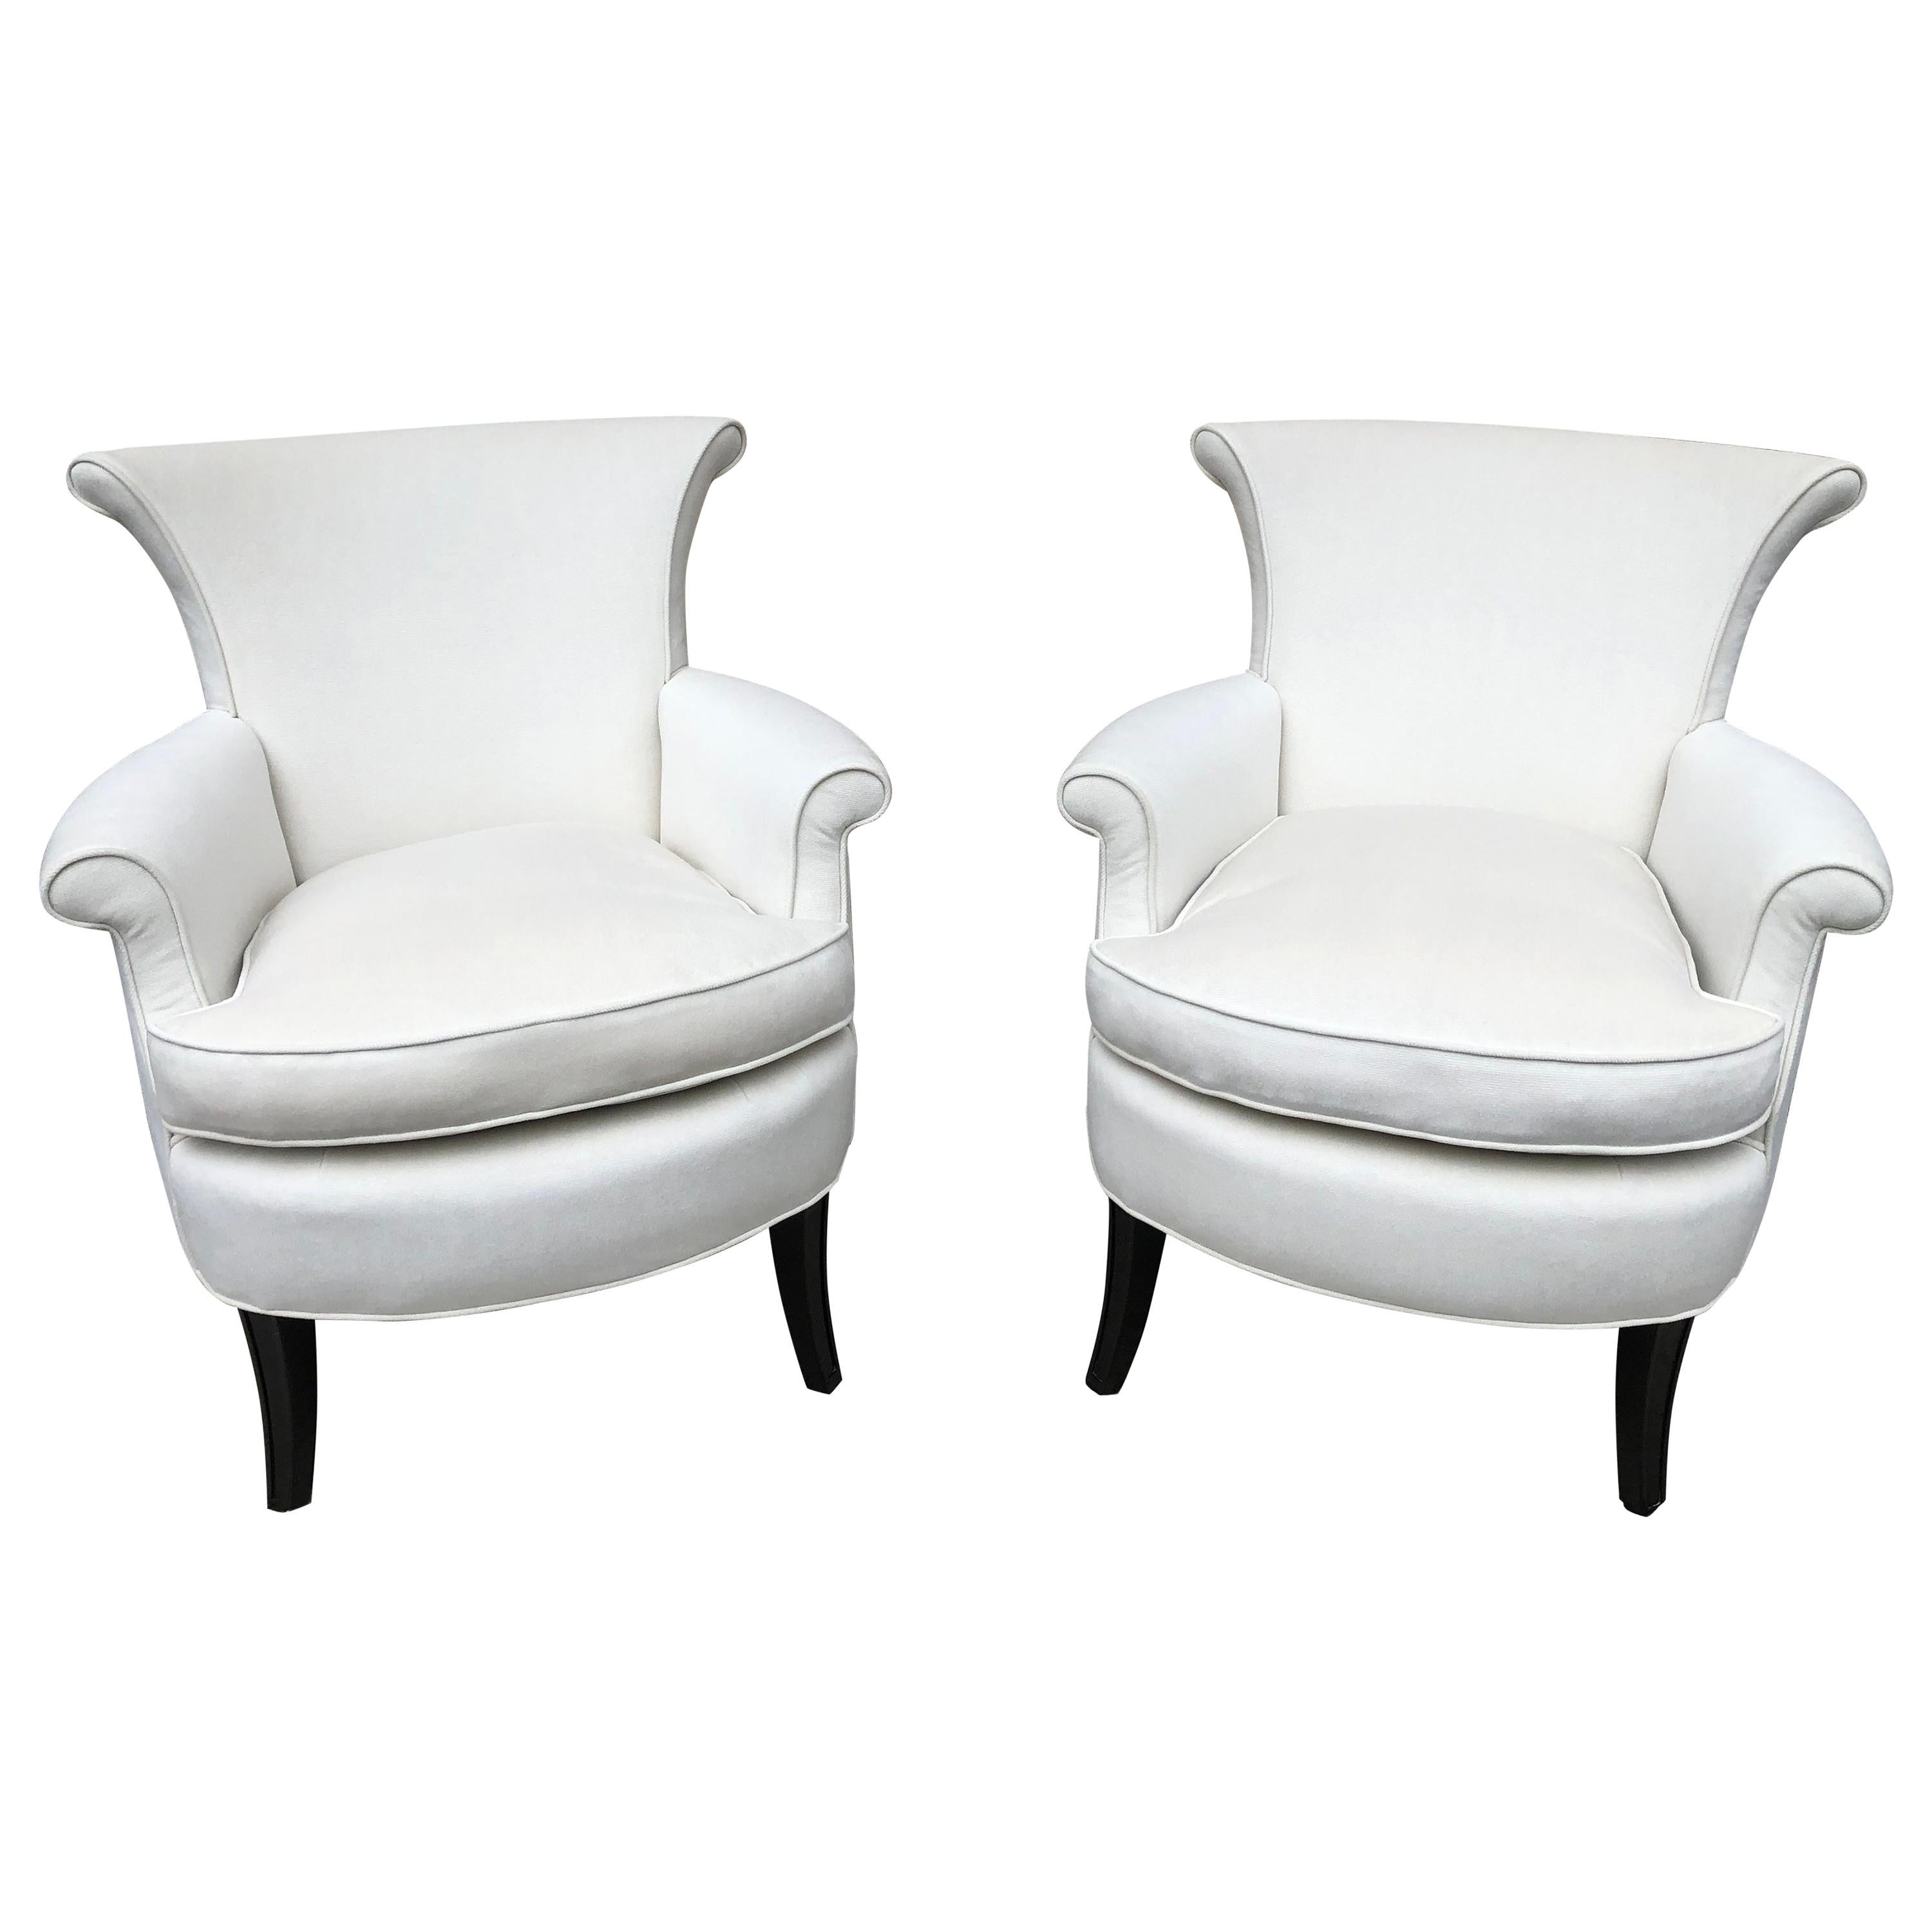 Pair of Tommi Parzinger Petite Slipper Chairs/ Club Arm Chairs